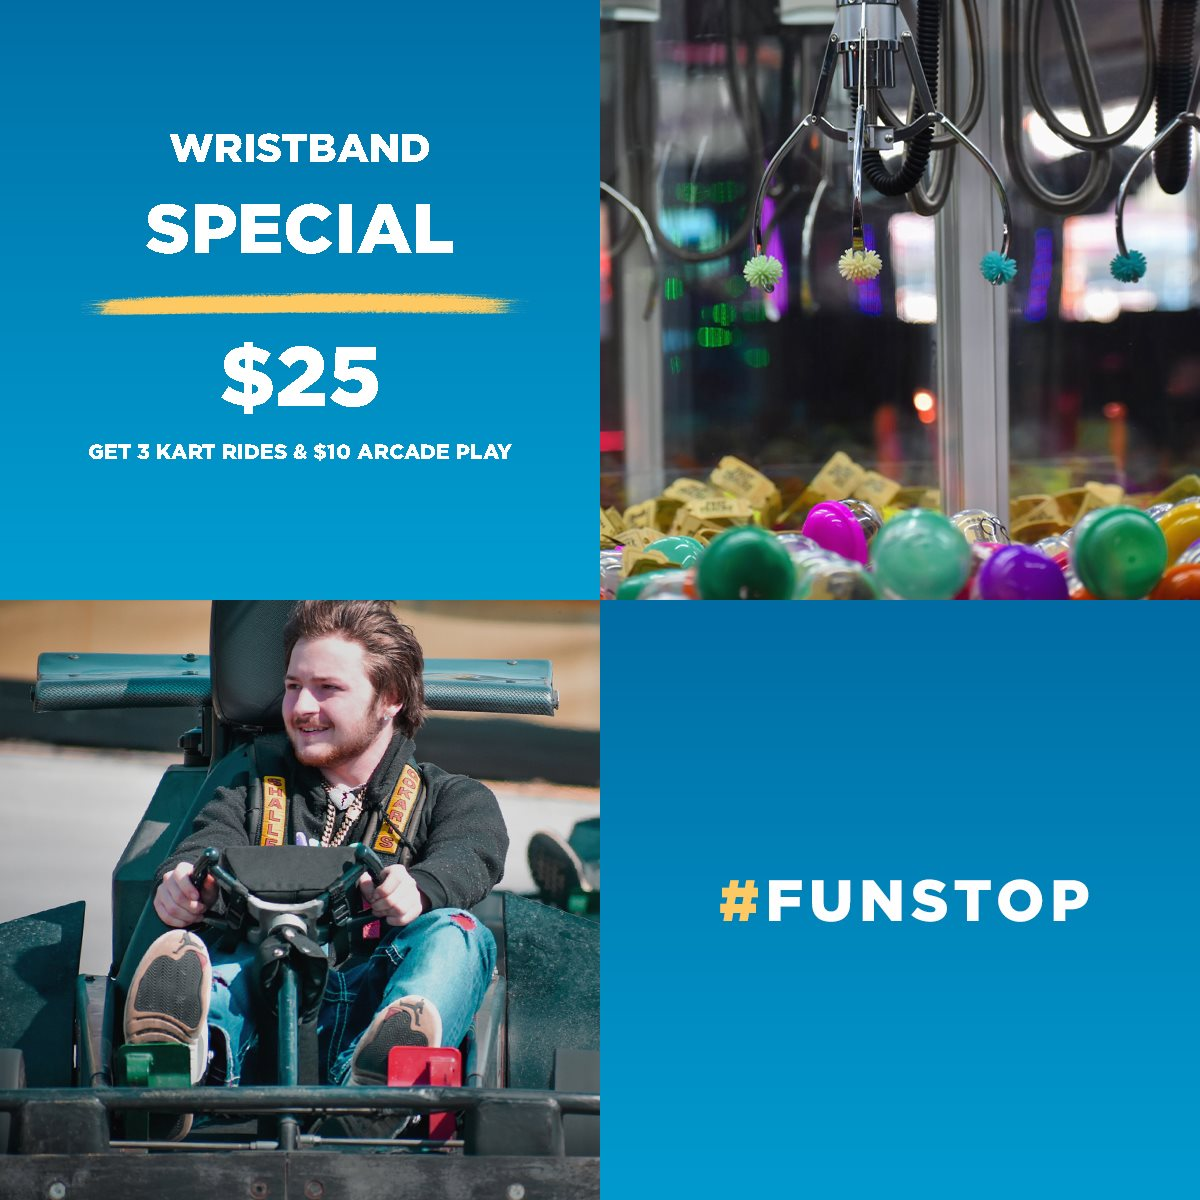 Fun Stop Pigeon Forge Wristband Special